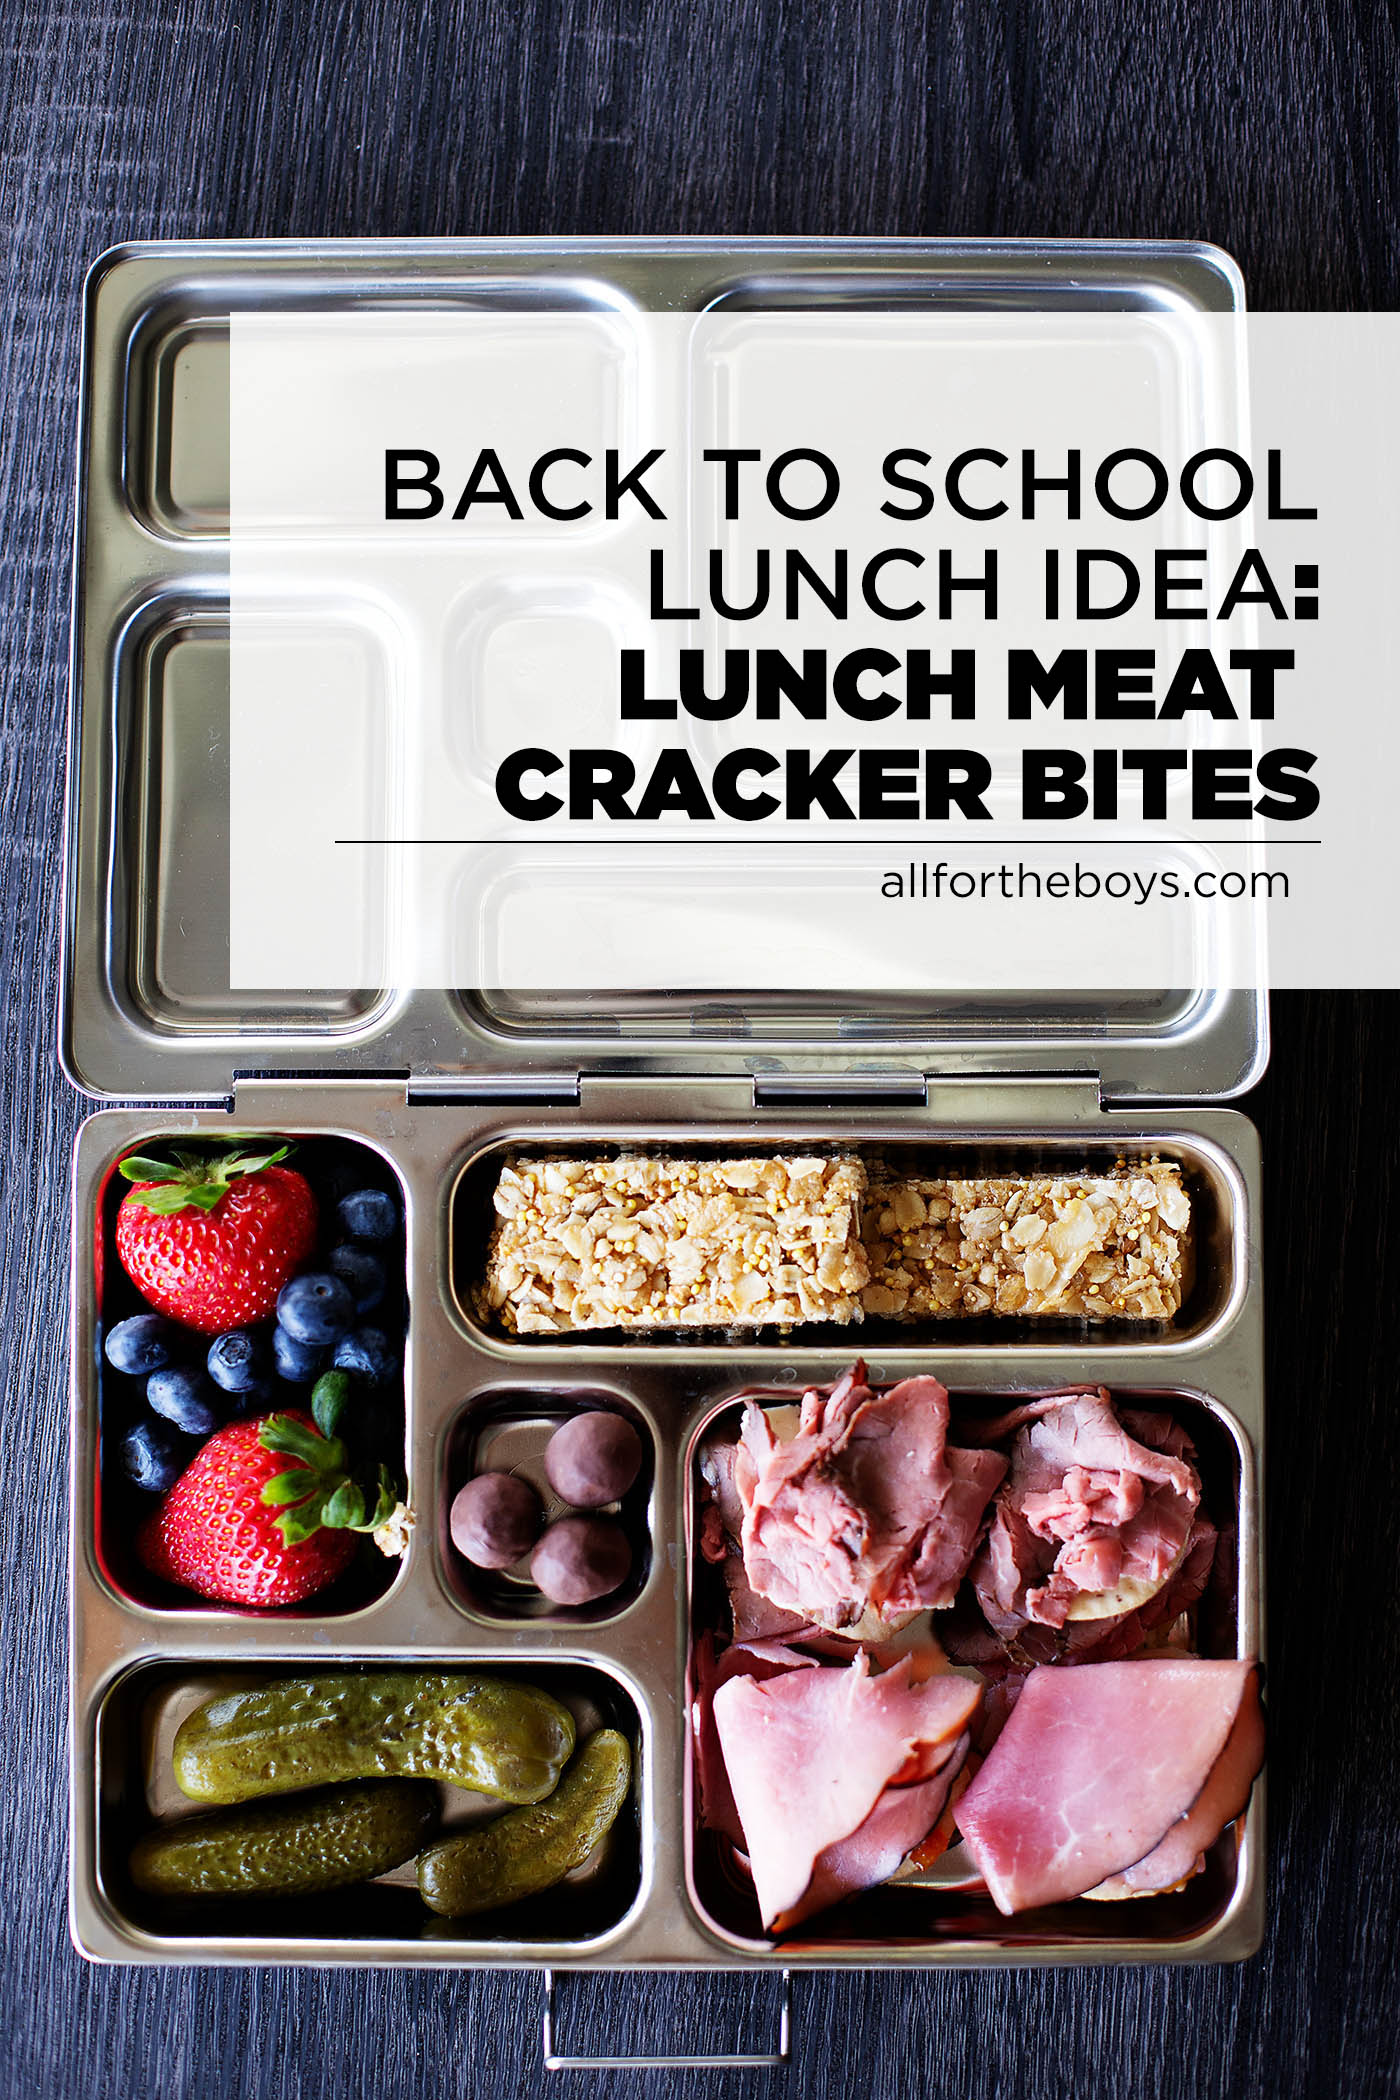 Back to school lunch idea: lunch meat cracker bites!